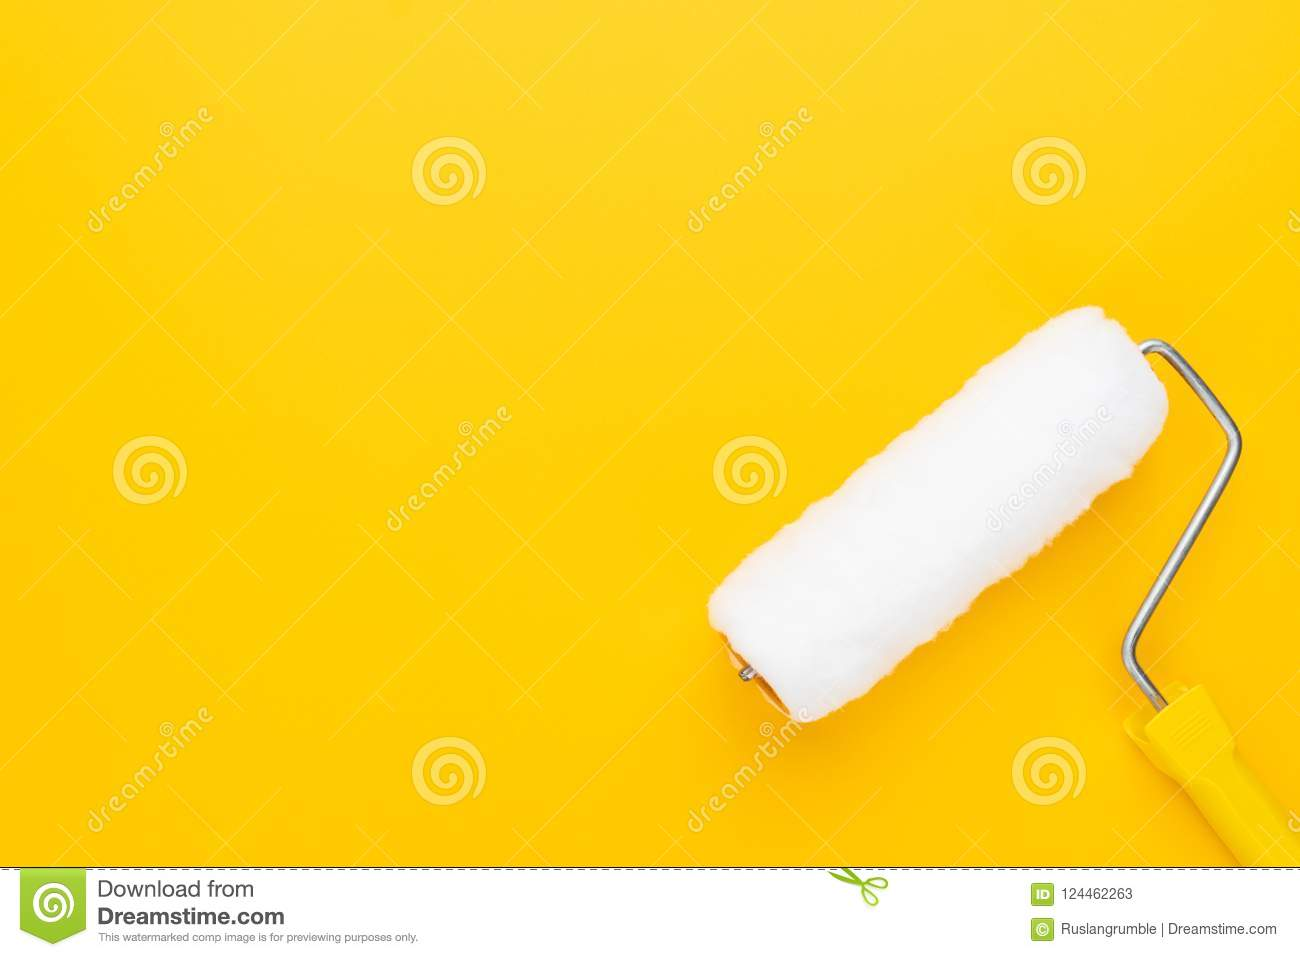 Clean paint roller on the yellow background with copy space